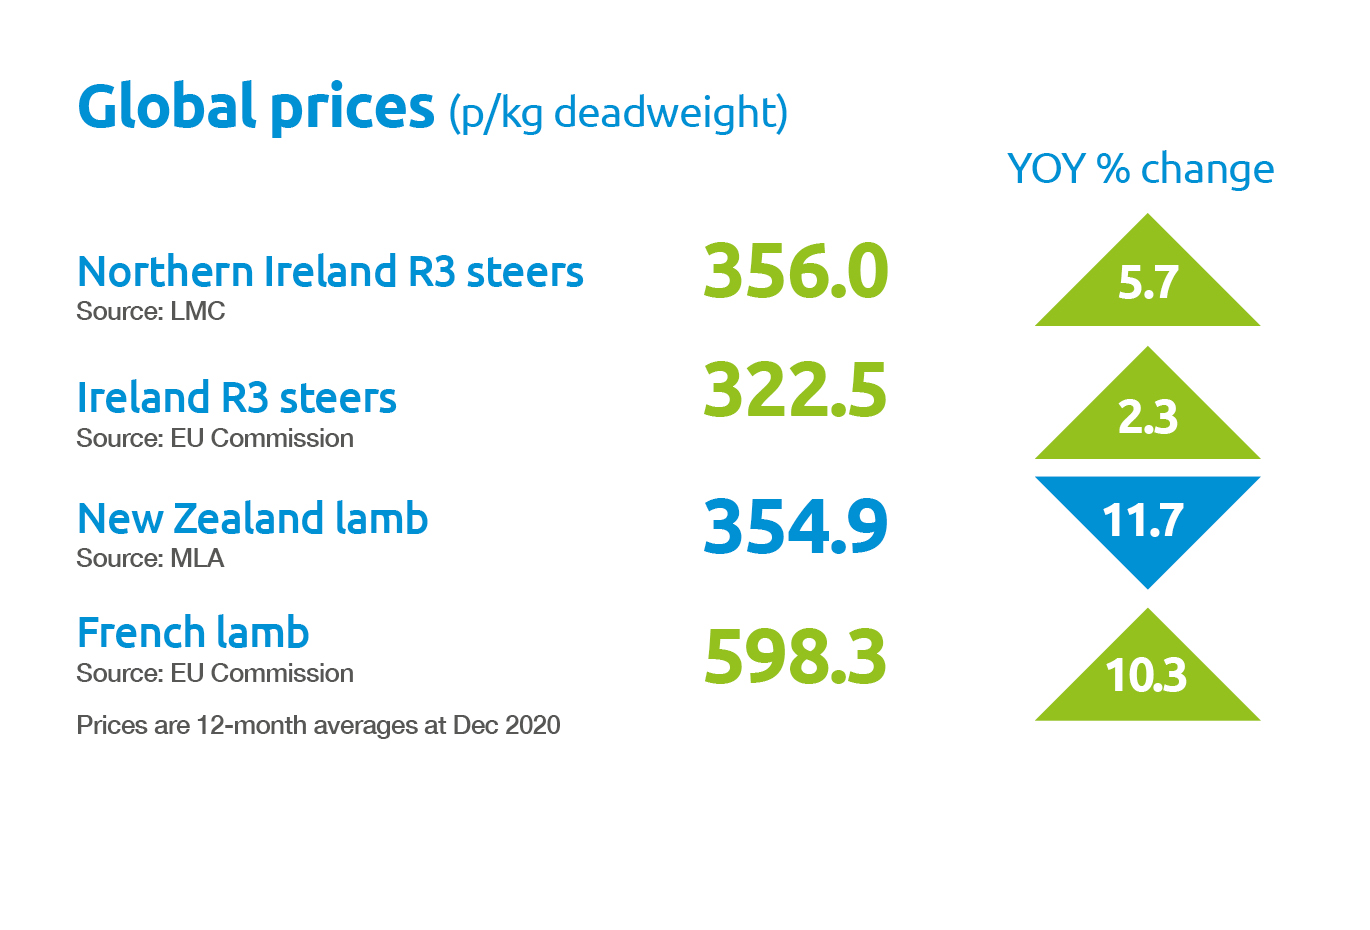 Beef and lamb global prices